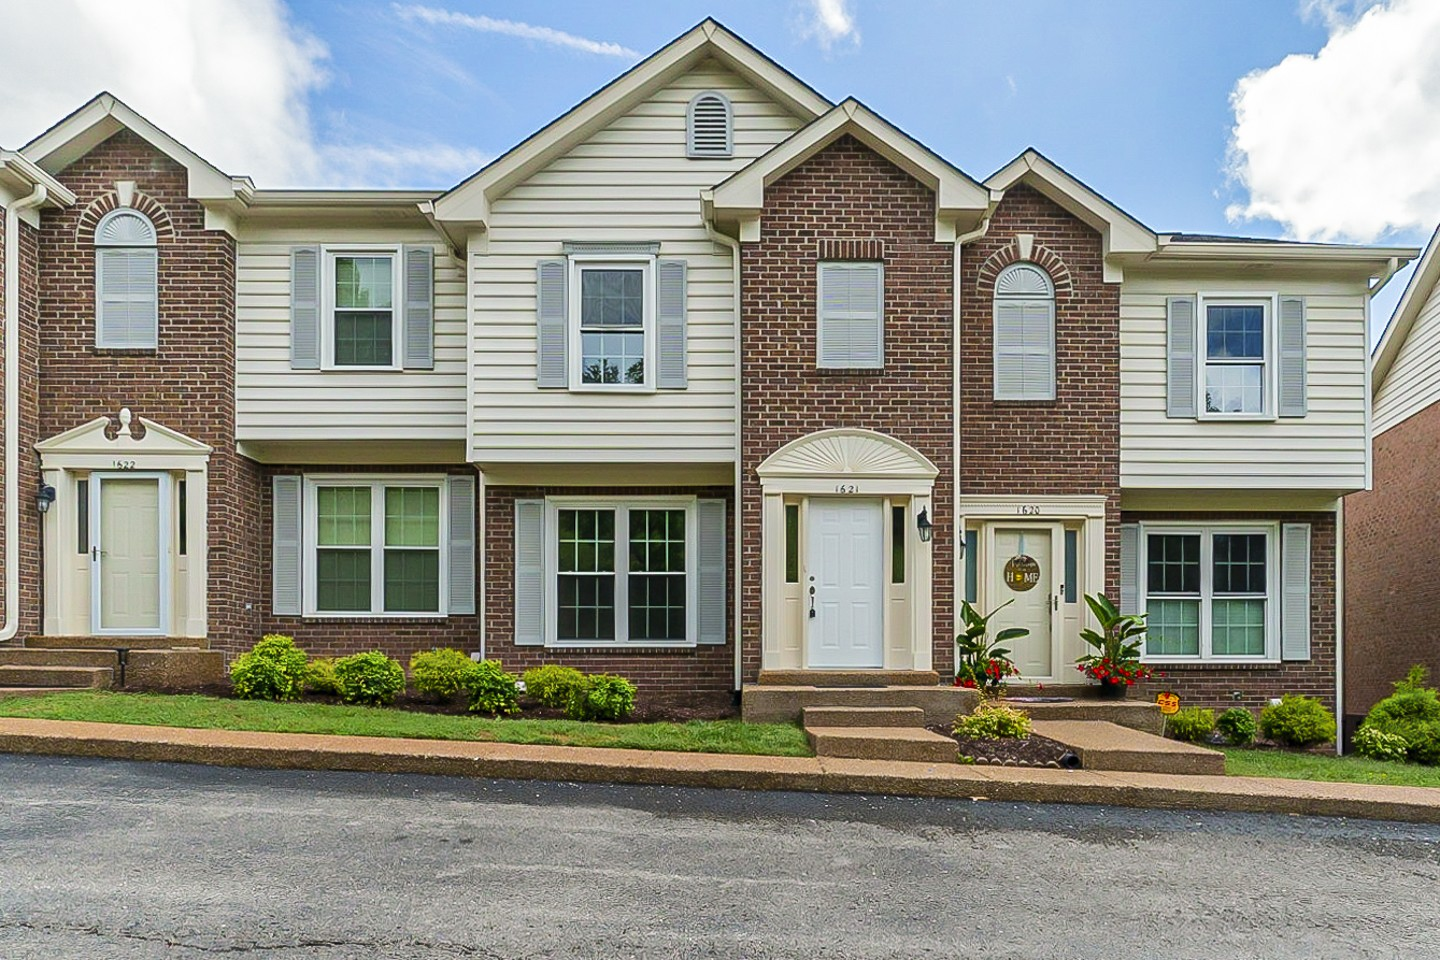 """You will love this beautiful townhome nestled in the heart of Cool Springs in """"Brentwood Pointe - The View""""! With features like caramel-colored hardwood floors, new carpet, fresh gray paint, tasteful crown molding and a large gas fireplace, this home is both sophisticated and cozy. Full basement suite with a bathroom and walkout ground floor entrance! You will absolutely LOVE the beautiful, private view of Franklin from the back deck."""